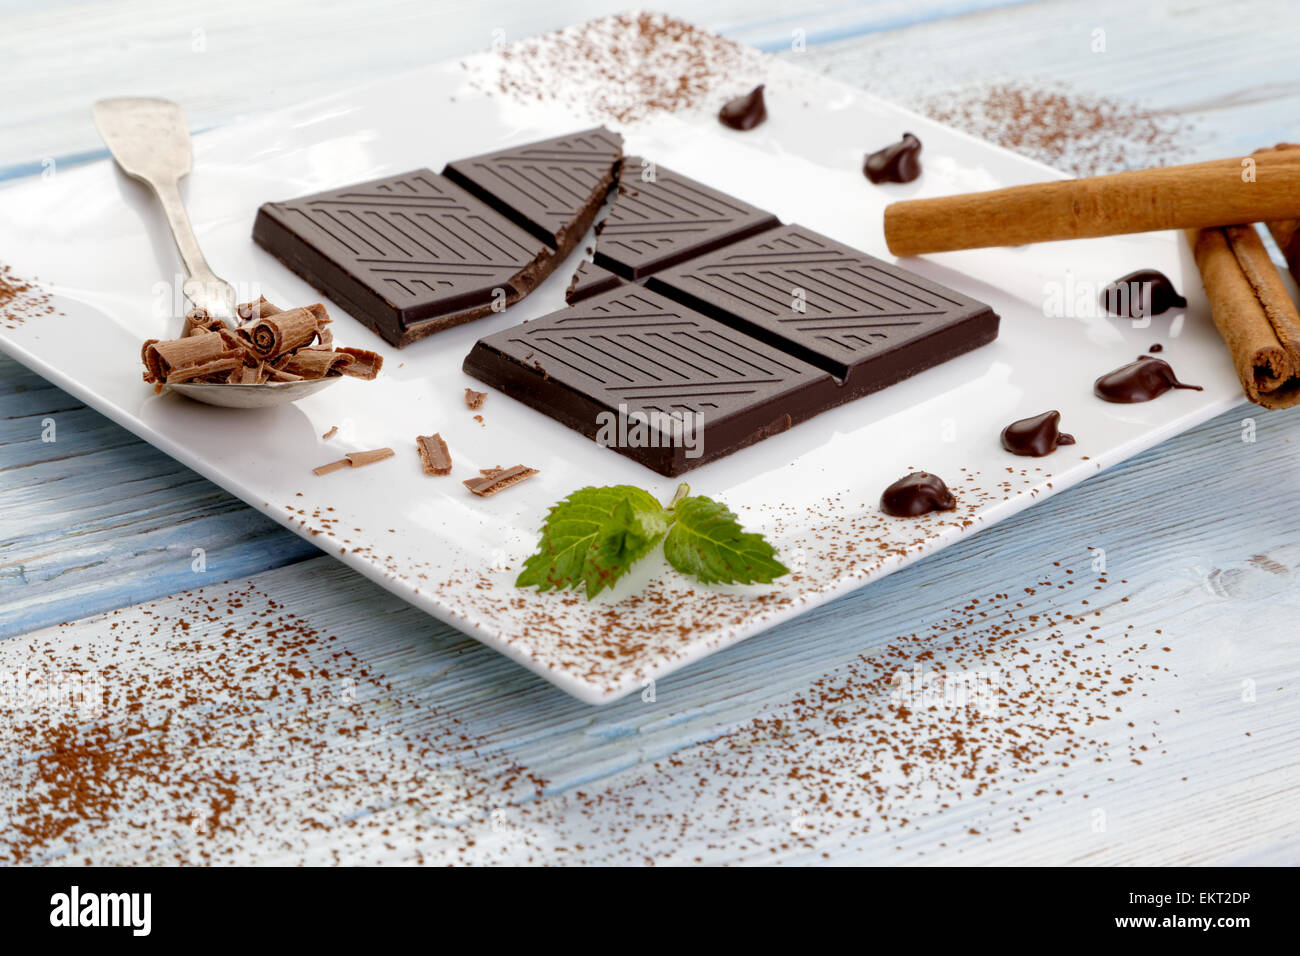 Dark chocolate - Stock Image